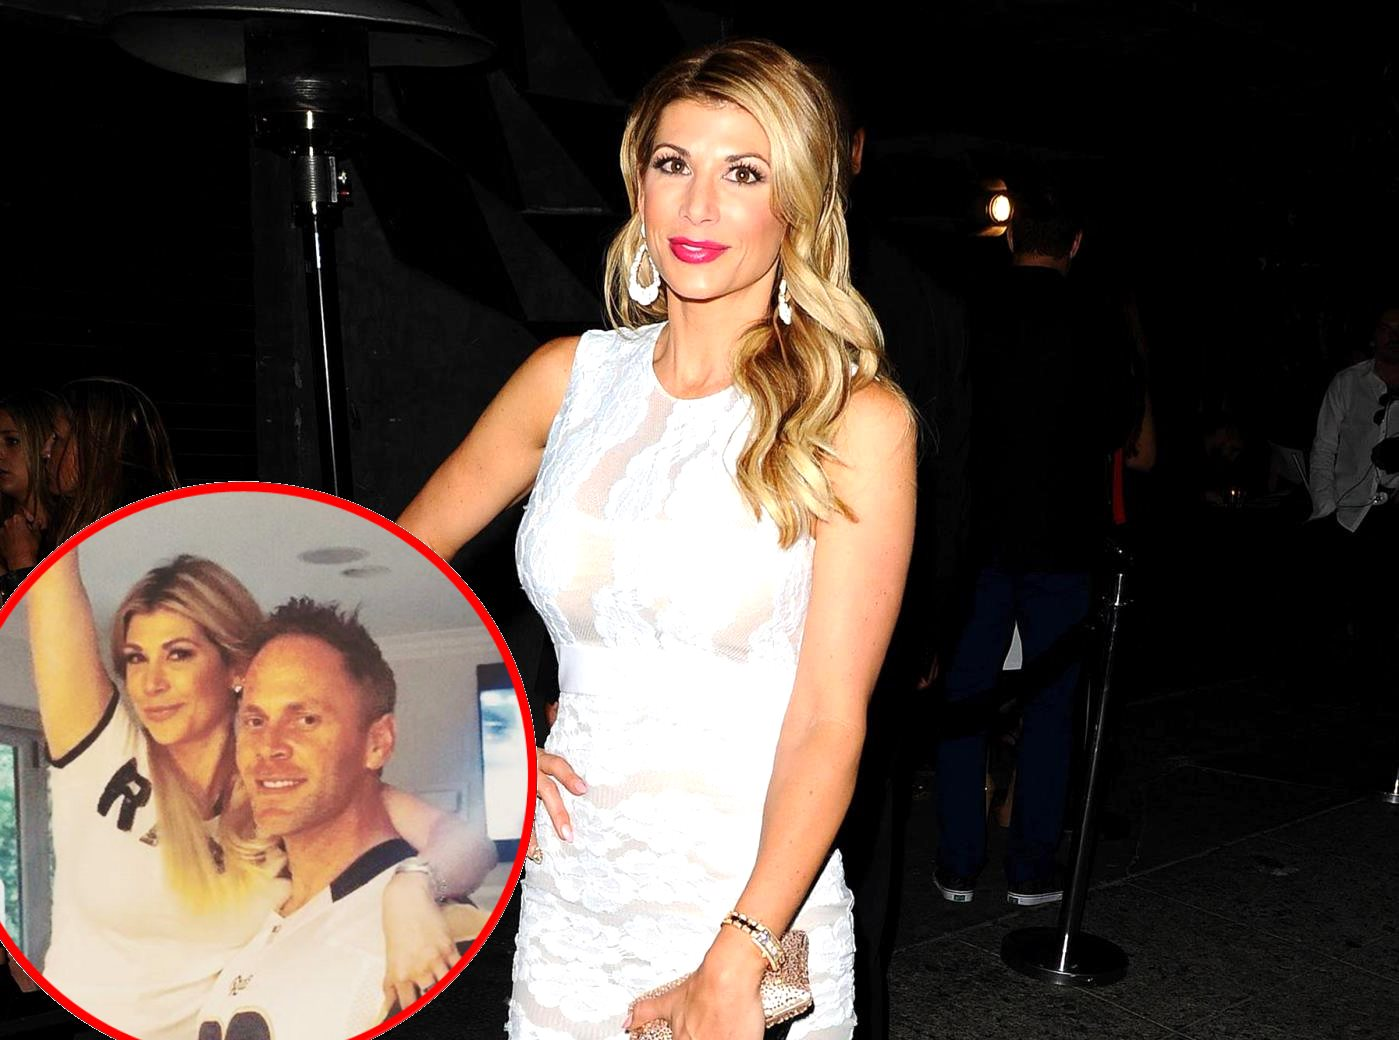 RHOC's Alexis Bellino New Boyfriend Photos! Addresses Pregnancy Rumors & New Reality Show